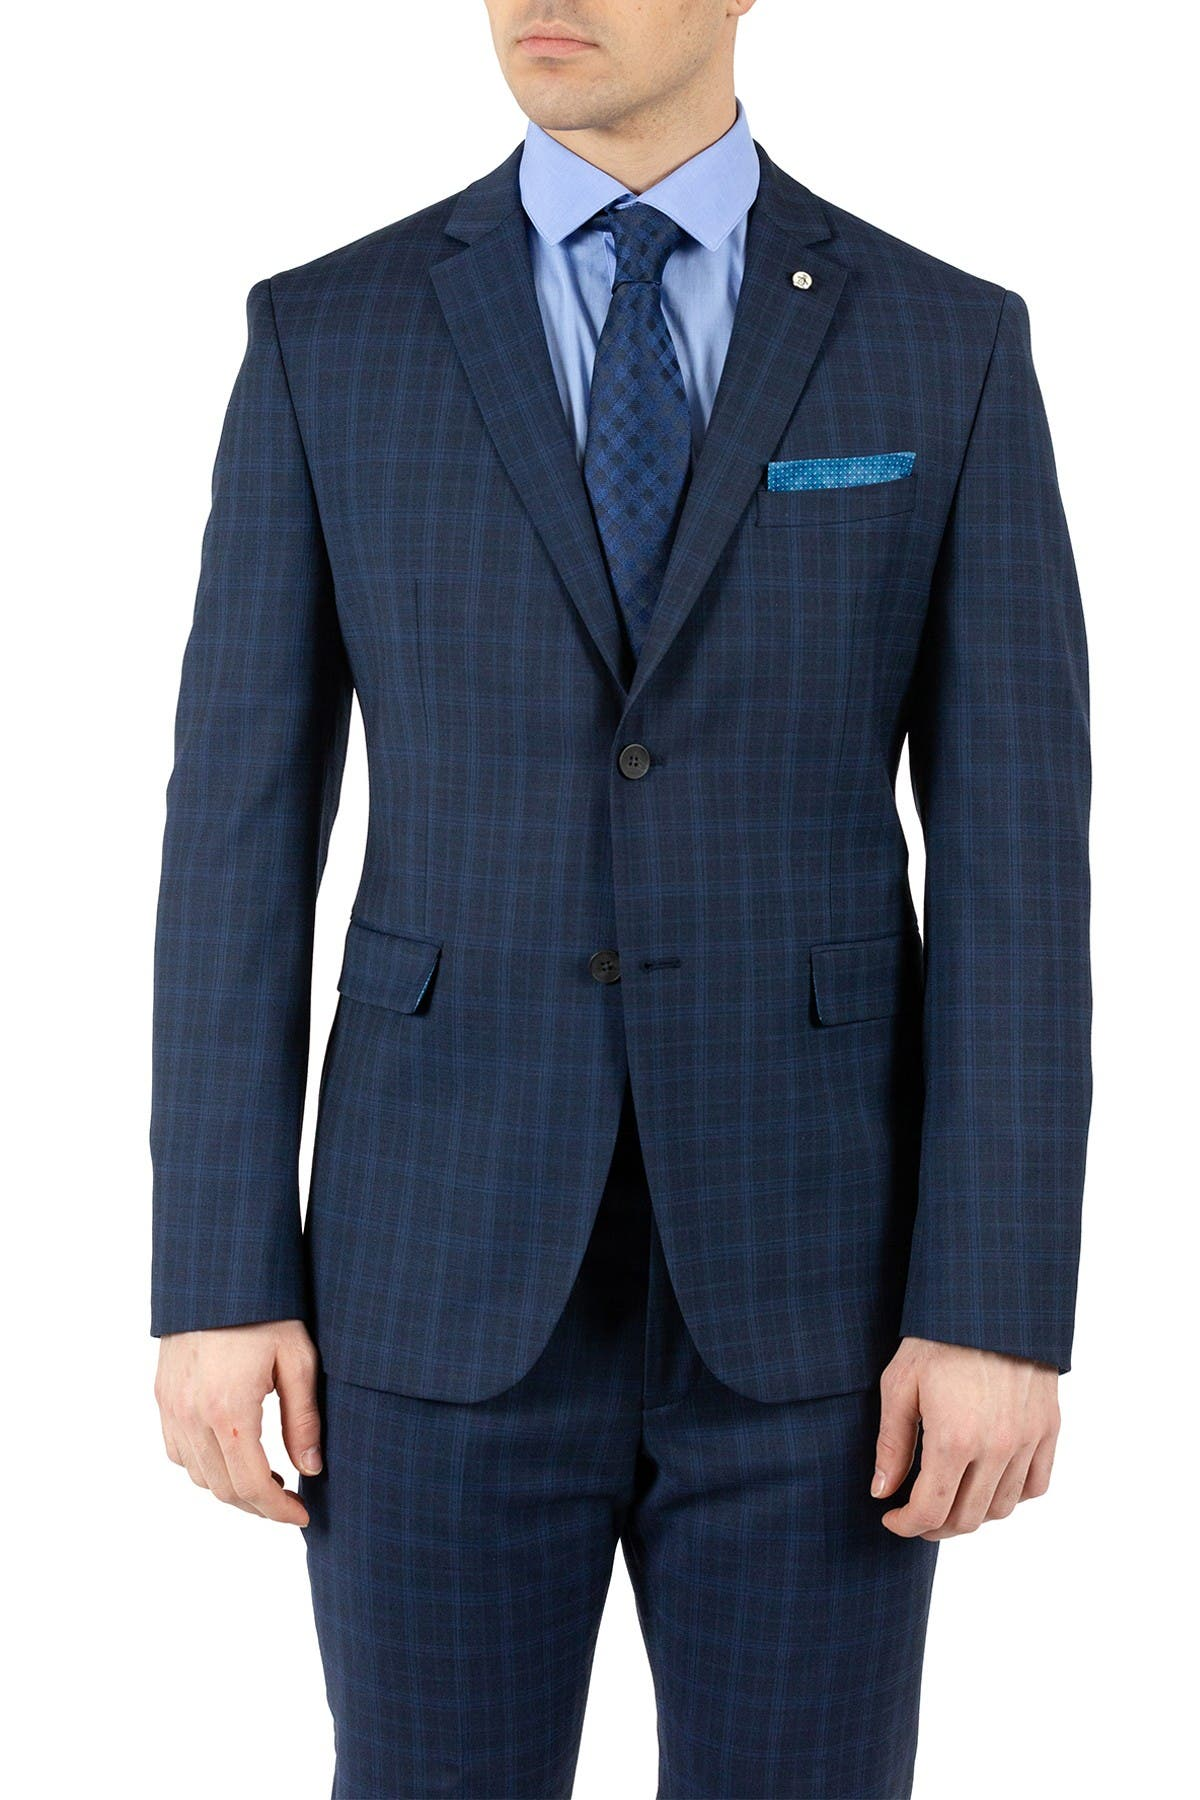 Image of Original Penguin Dark Blue Plaid Two Button Notch Lapel Slim Fit Wool Blend Suit Separates Jacket